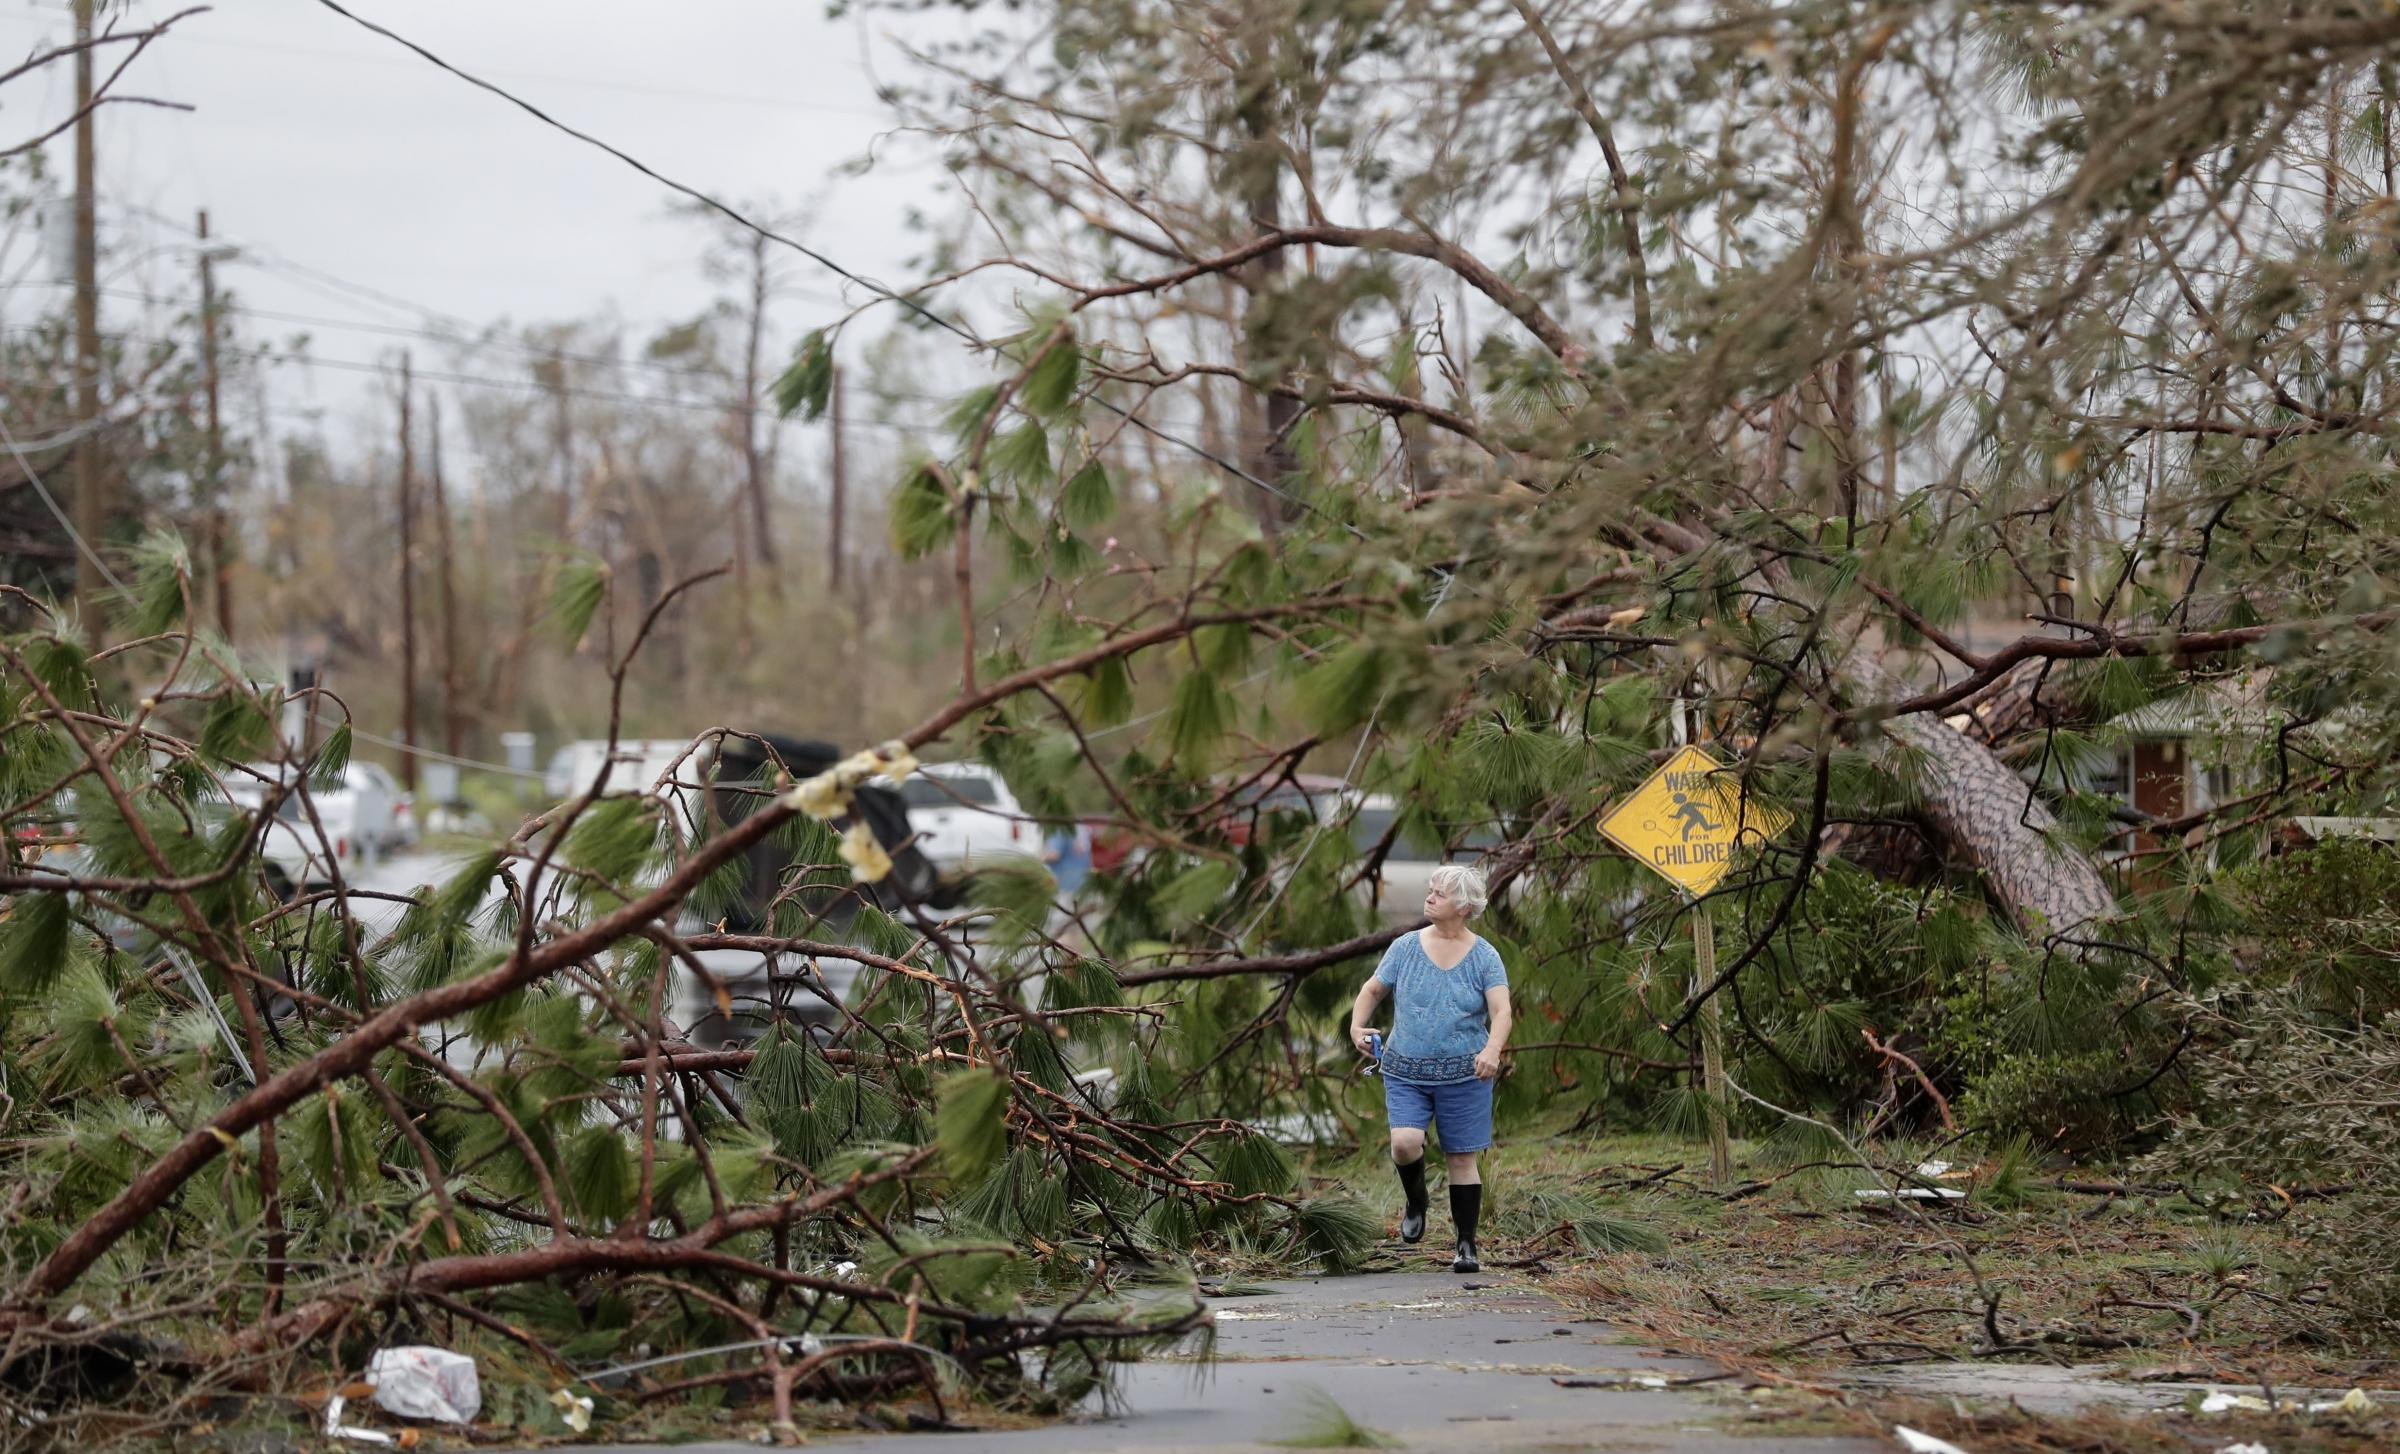 Storm Michael: 155mph winds leave trail of devastation